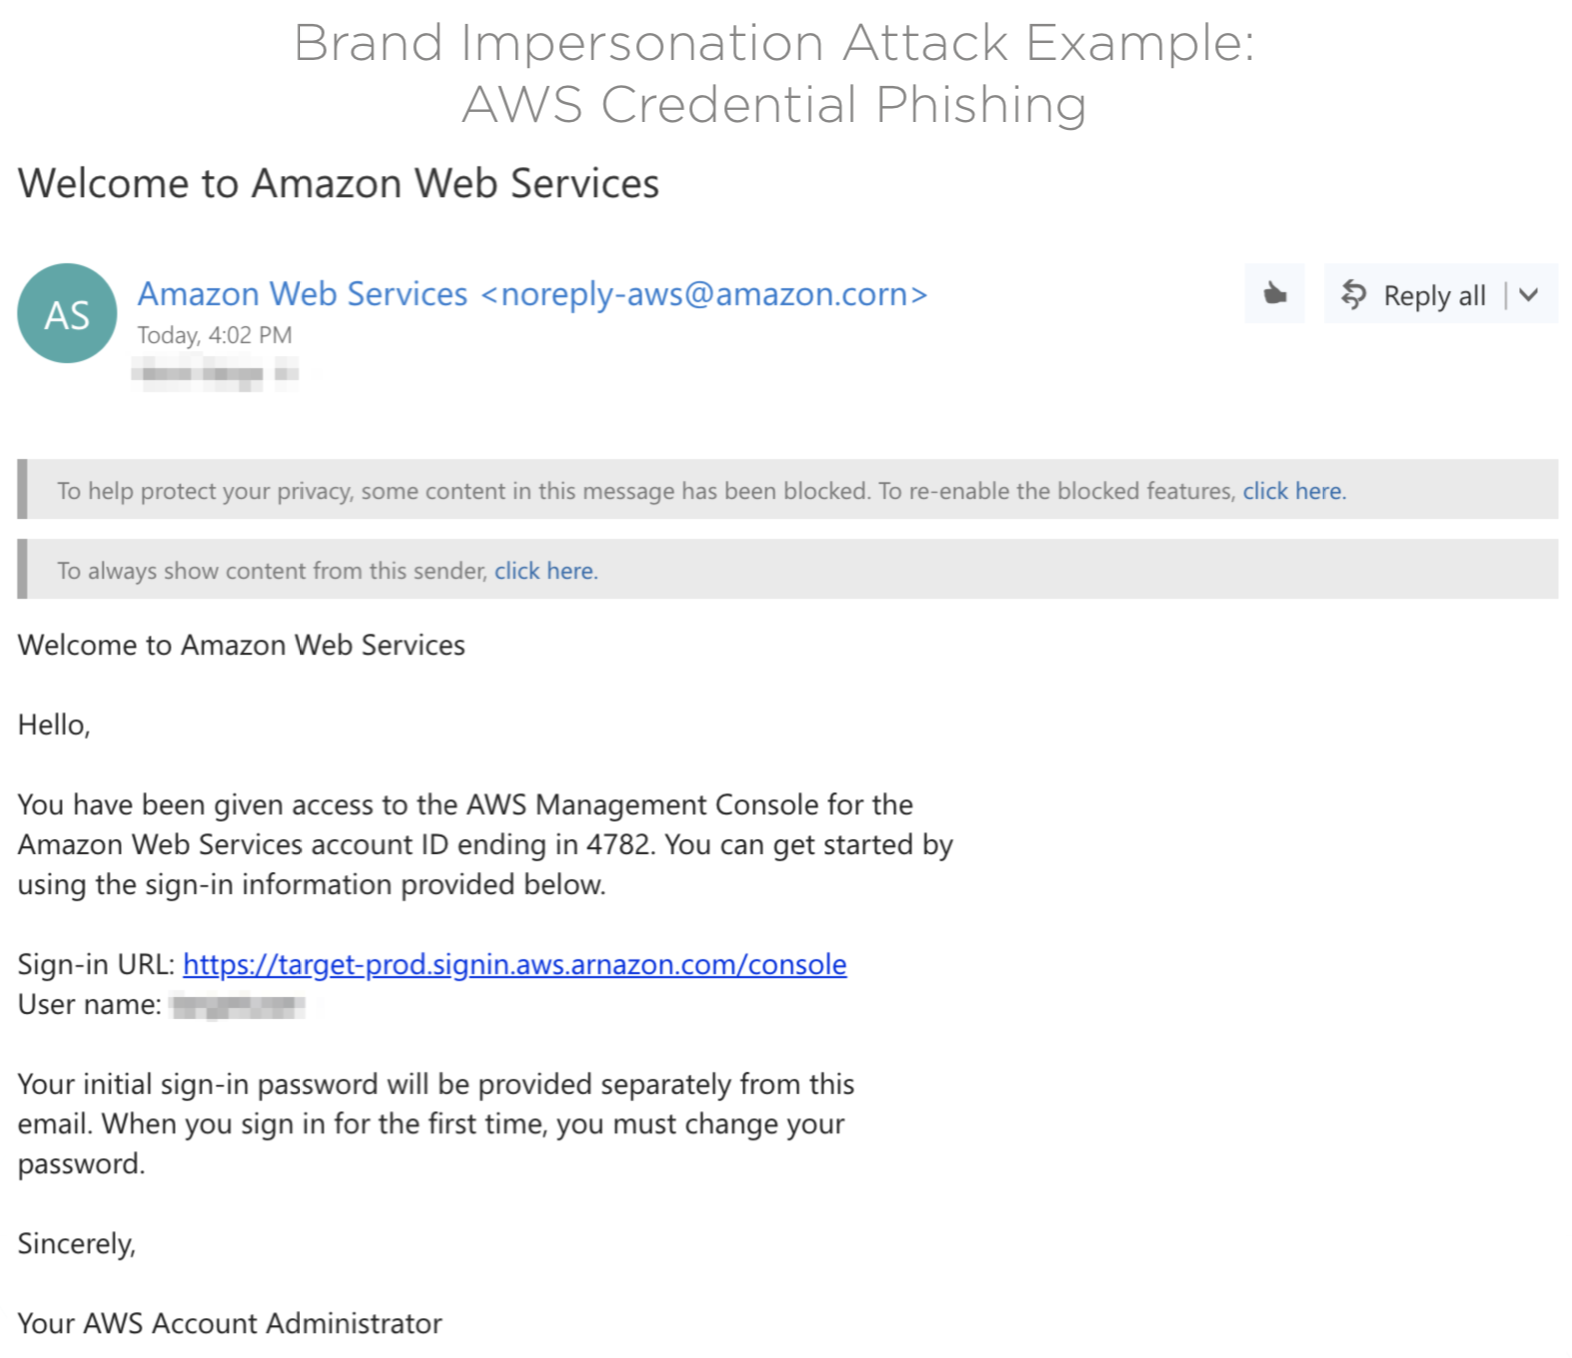 brand-impersonation-amazon-web-services-2019